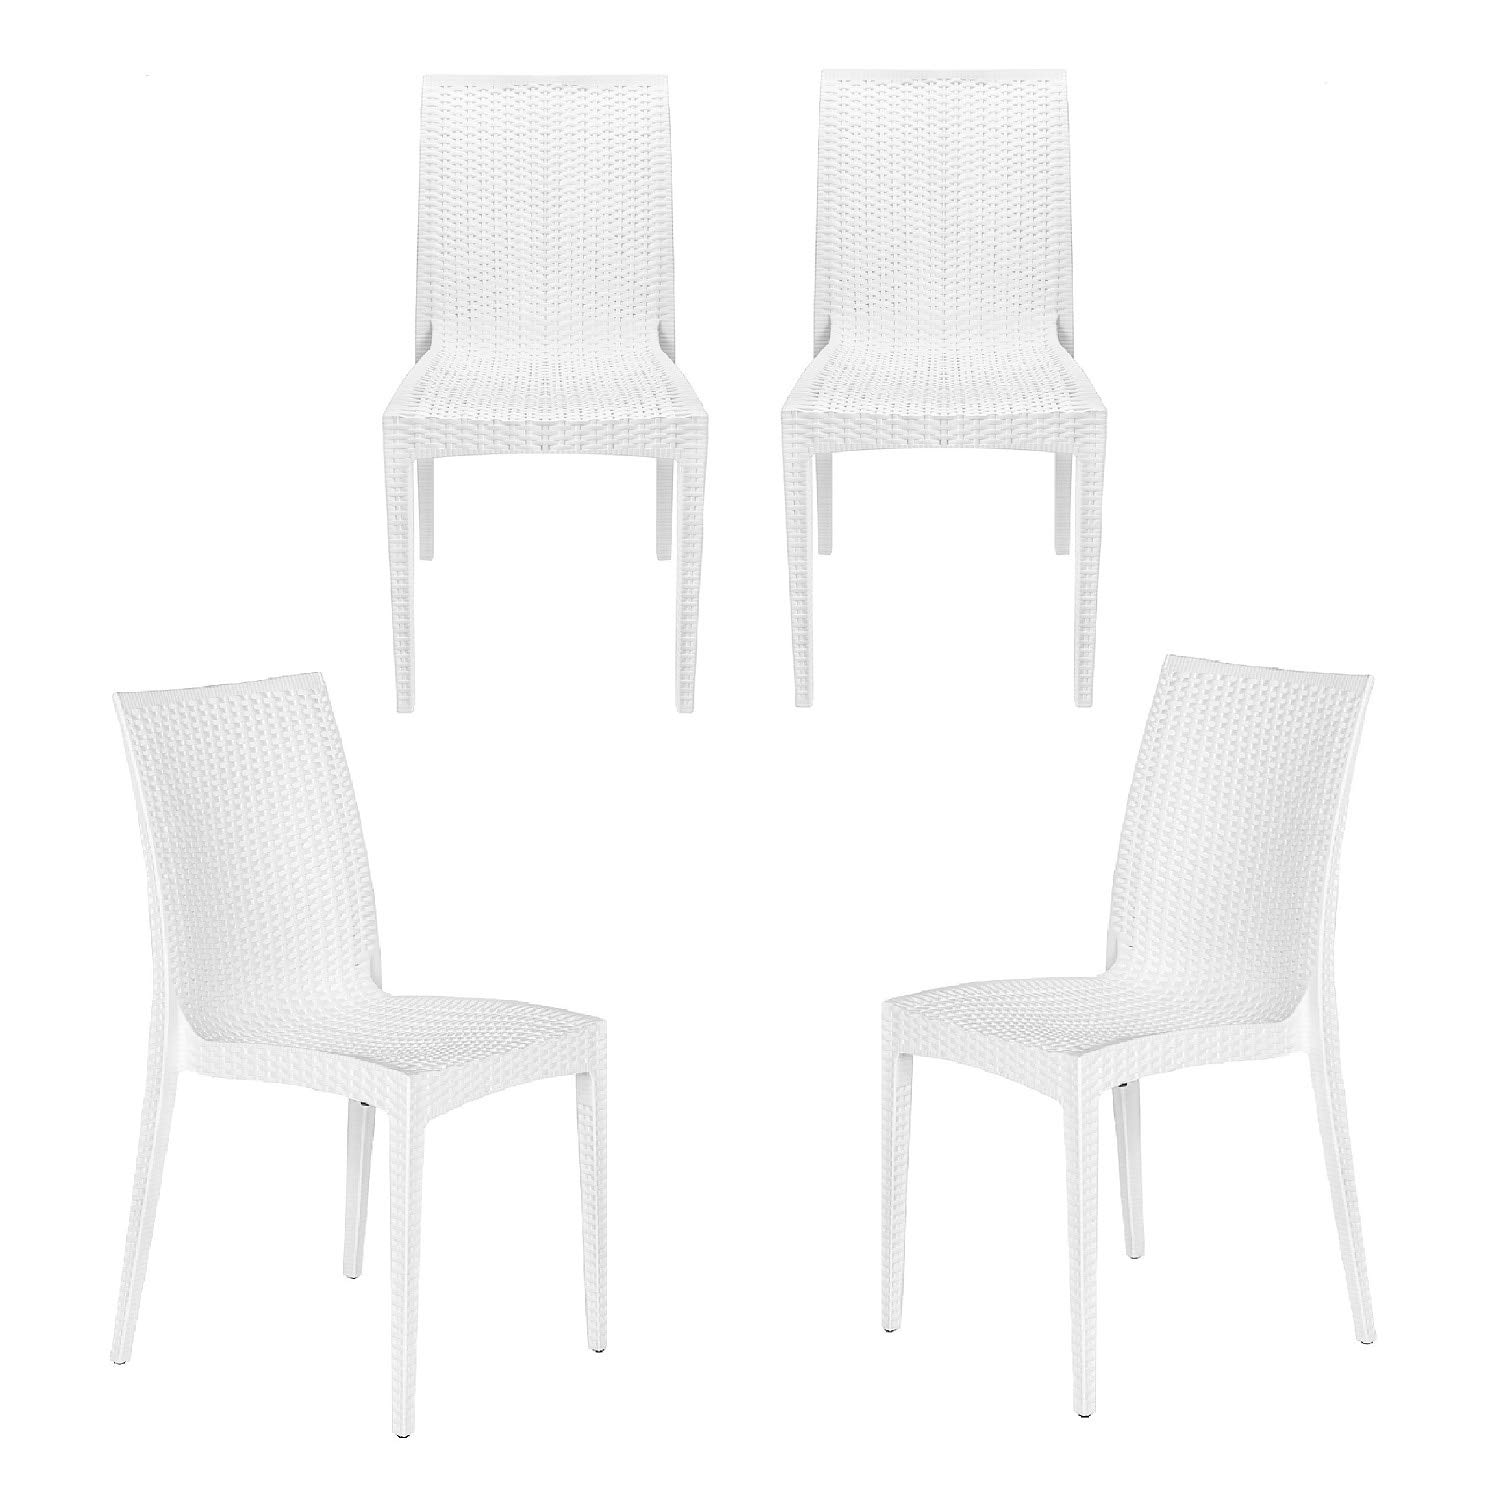 Rimdoc Patio Dining Chair White Plastic Chairs of Mid Century Country Garden Wicker Rattan Style Outdoor Waterproof Chic Furniture for Dining Room Balcony Porch Backyard Poolside Bistro Cafe Set of 4